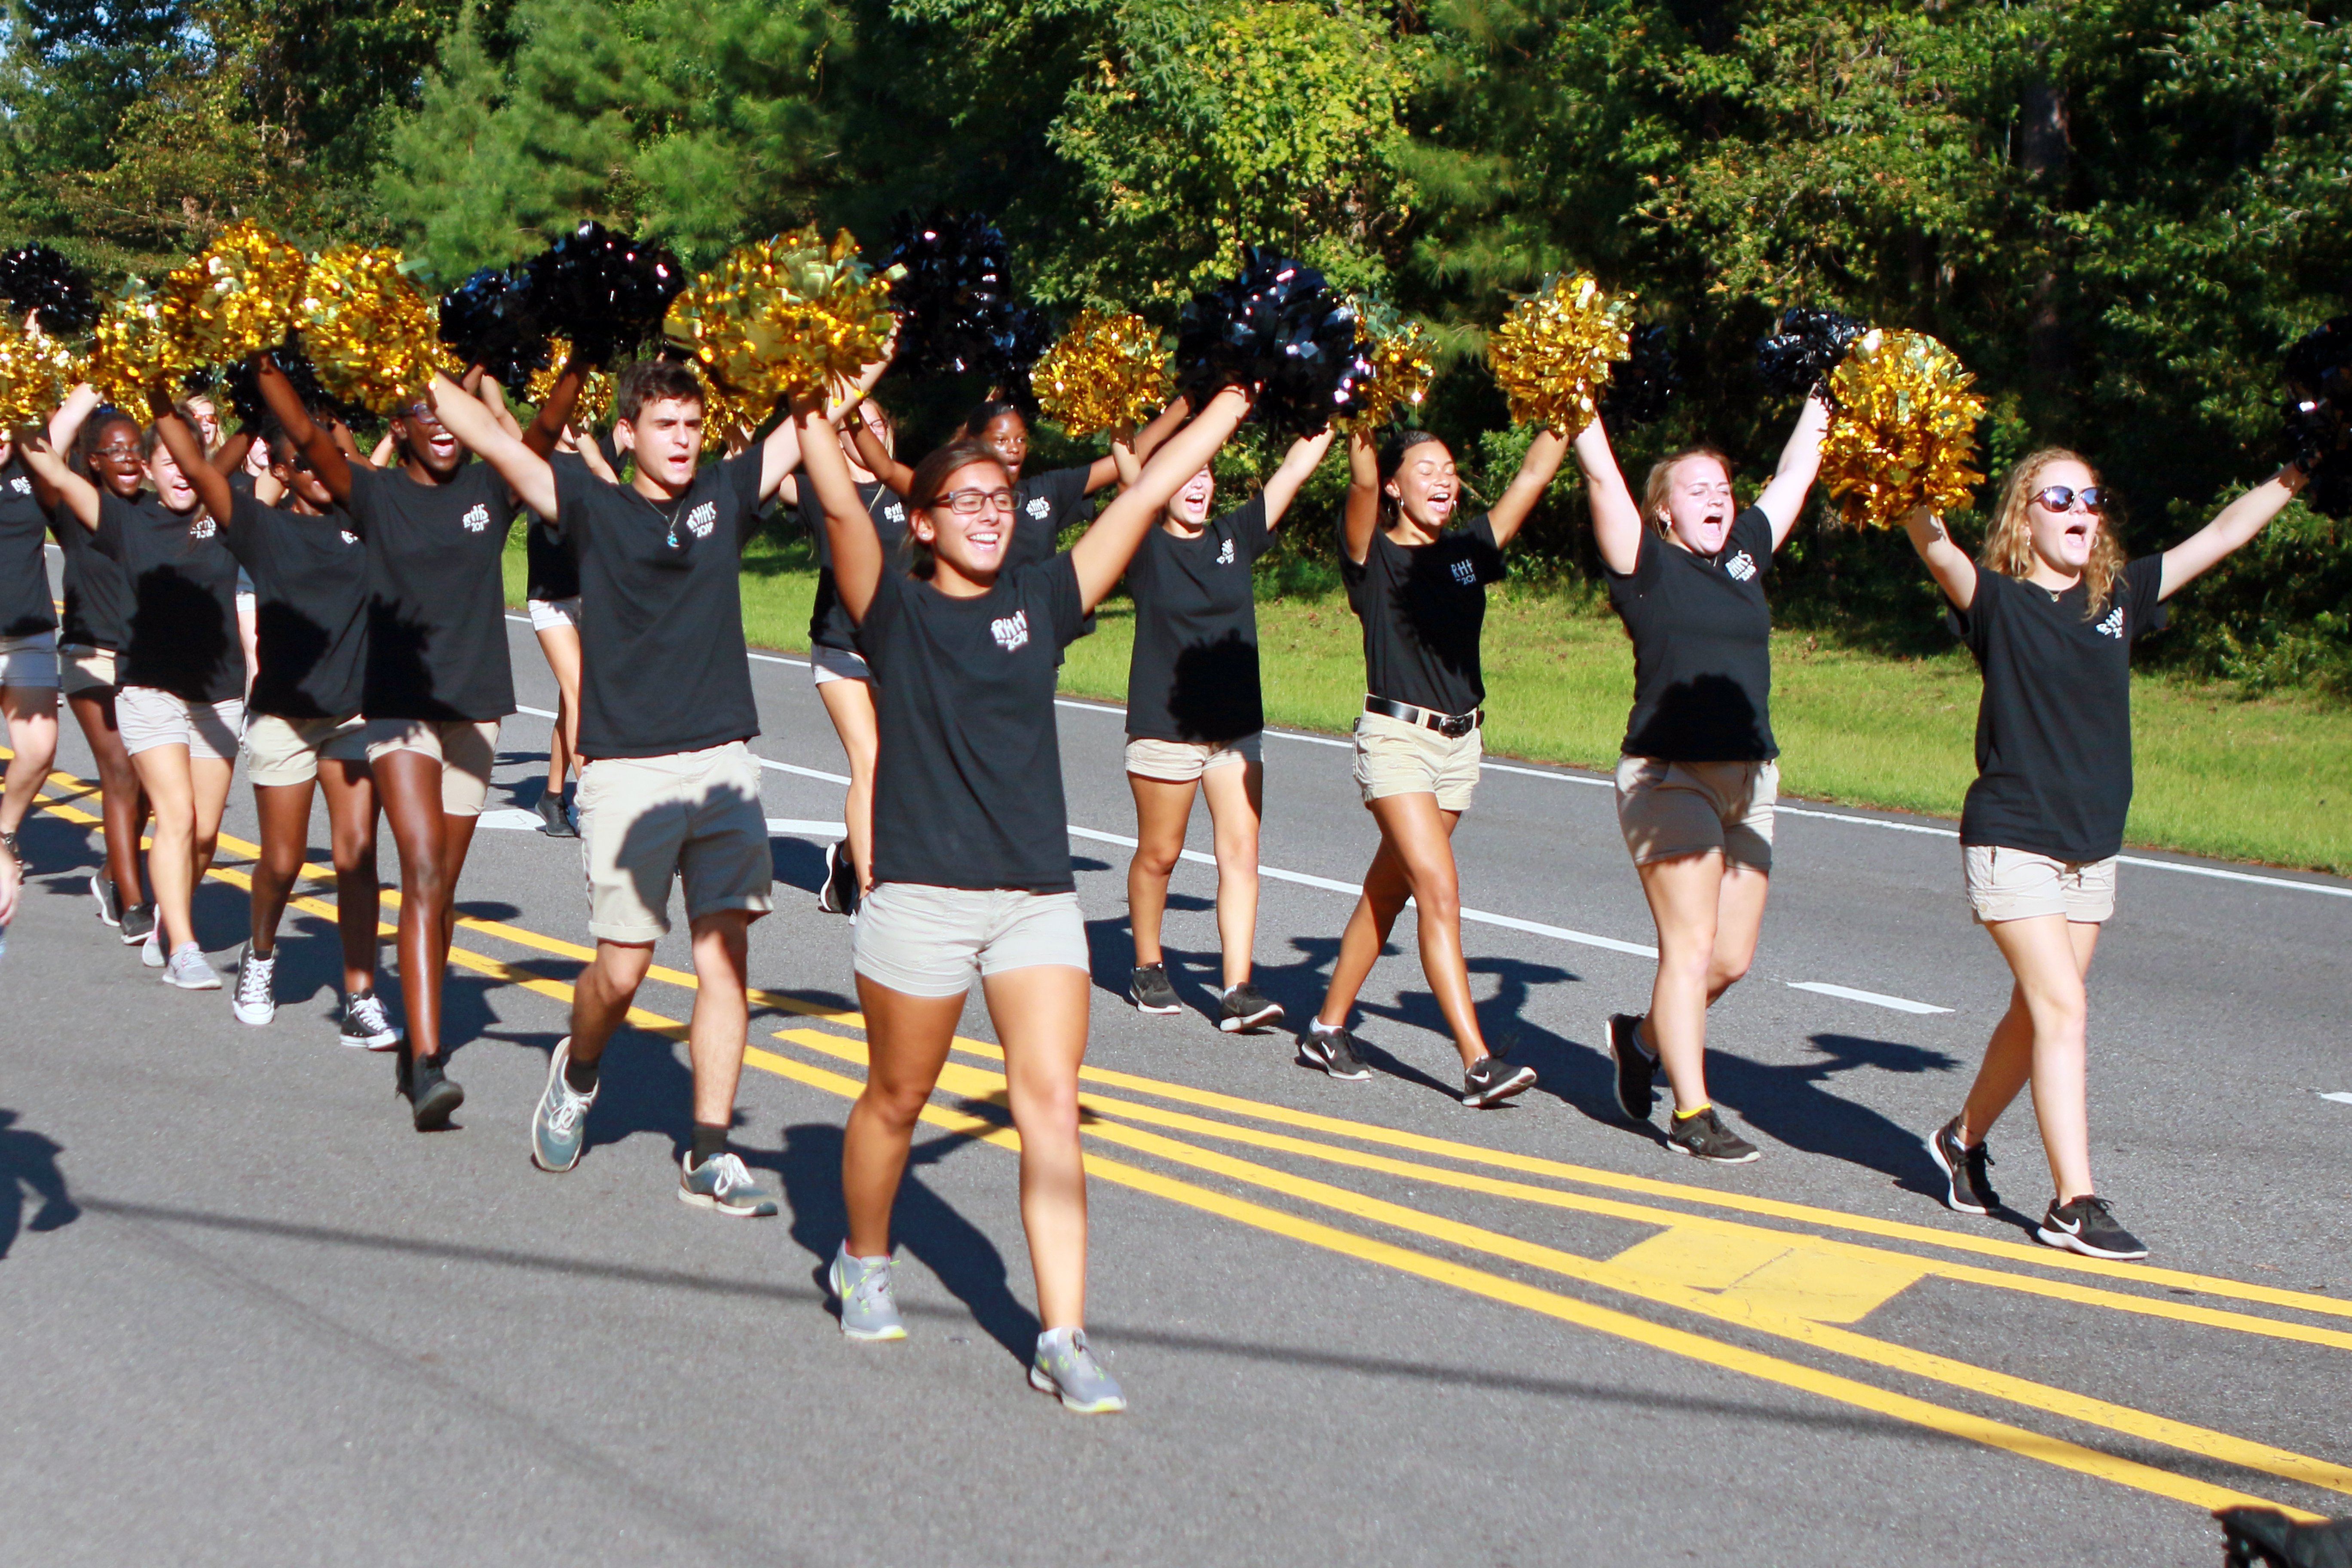 2018 Richmond Hill High School Homecoming Parade. Photo by Bryan Browning.